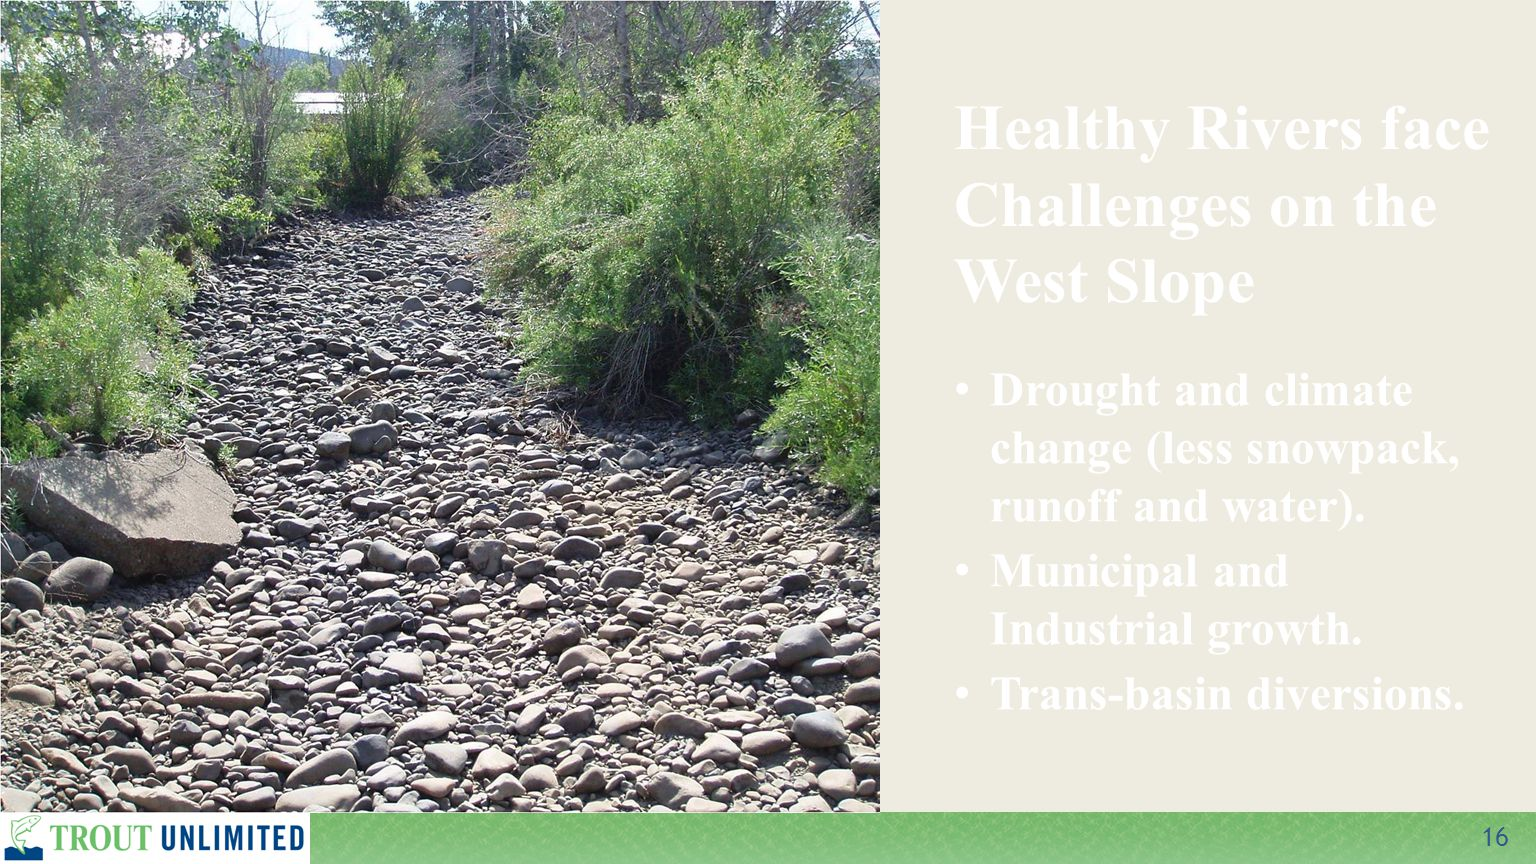 16 Drought and climate change (less snowpack, runoff and water). Municipal and Industrial growth. Trans-basin diversions. Healthy Rivers face Challeng